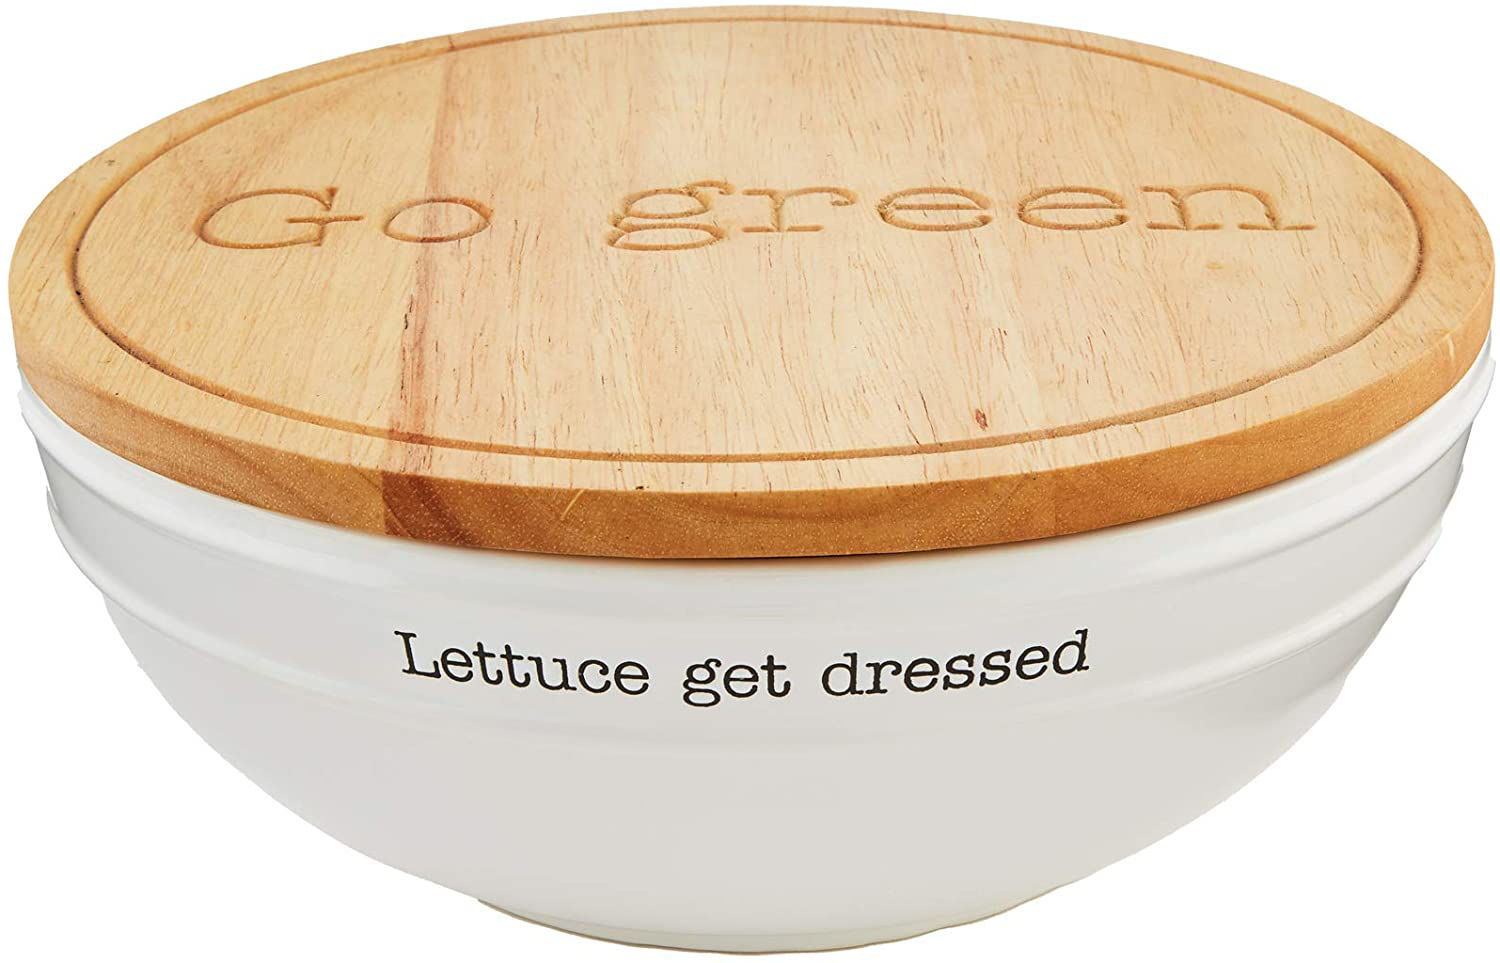 Circa Salad Bowl with Lid by Mudpie